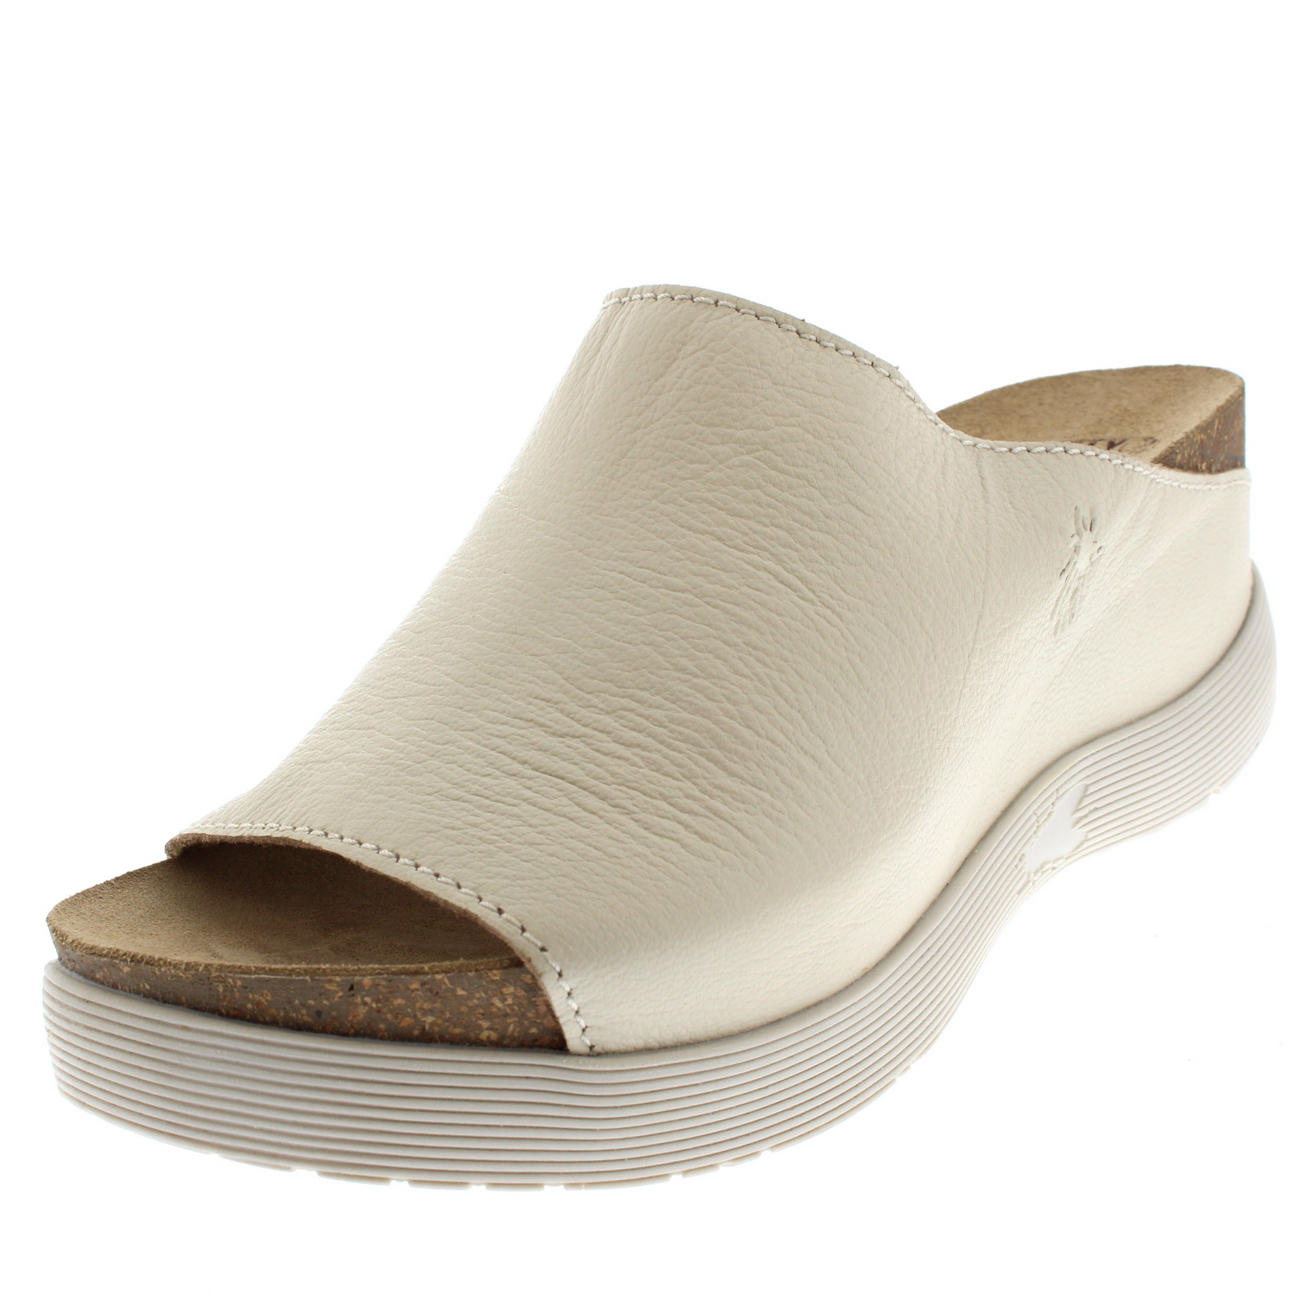 Fly London Wigg - off White Women s Wedge Sandals Various Sizes 41 ... cc88294575c0